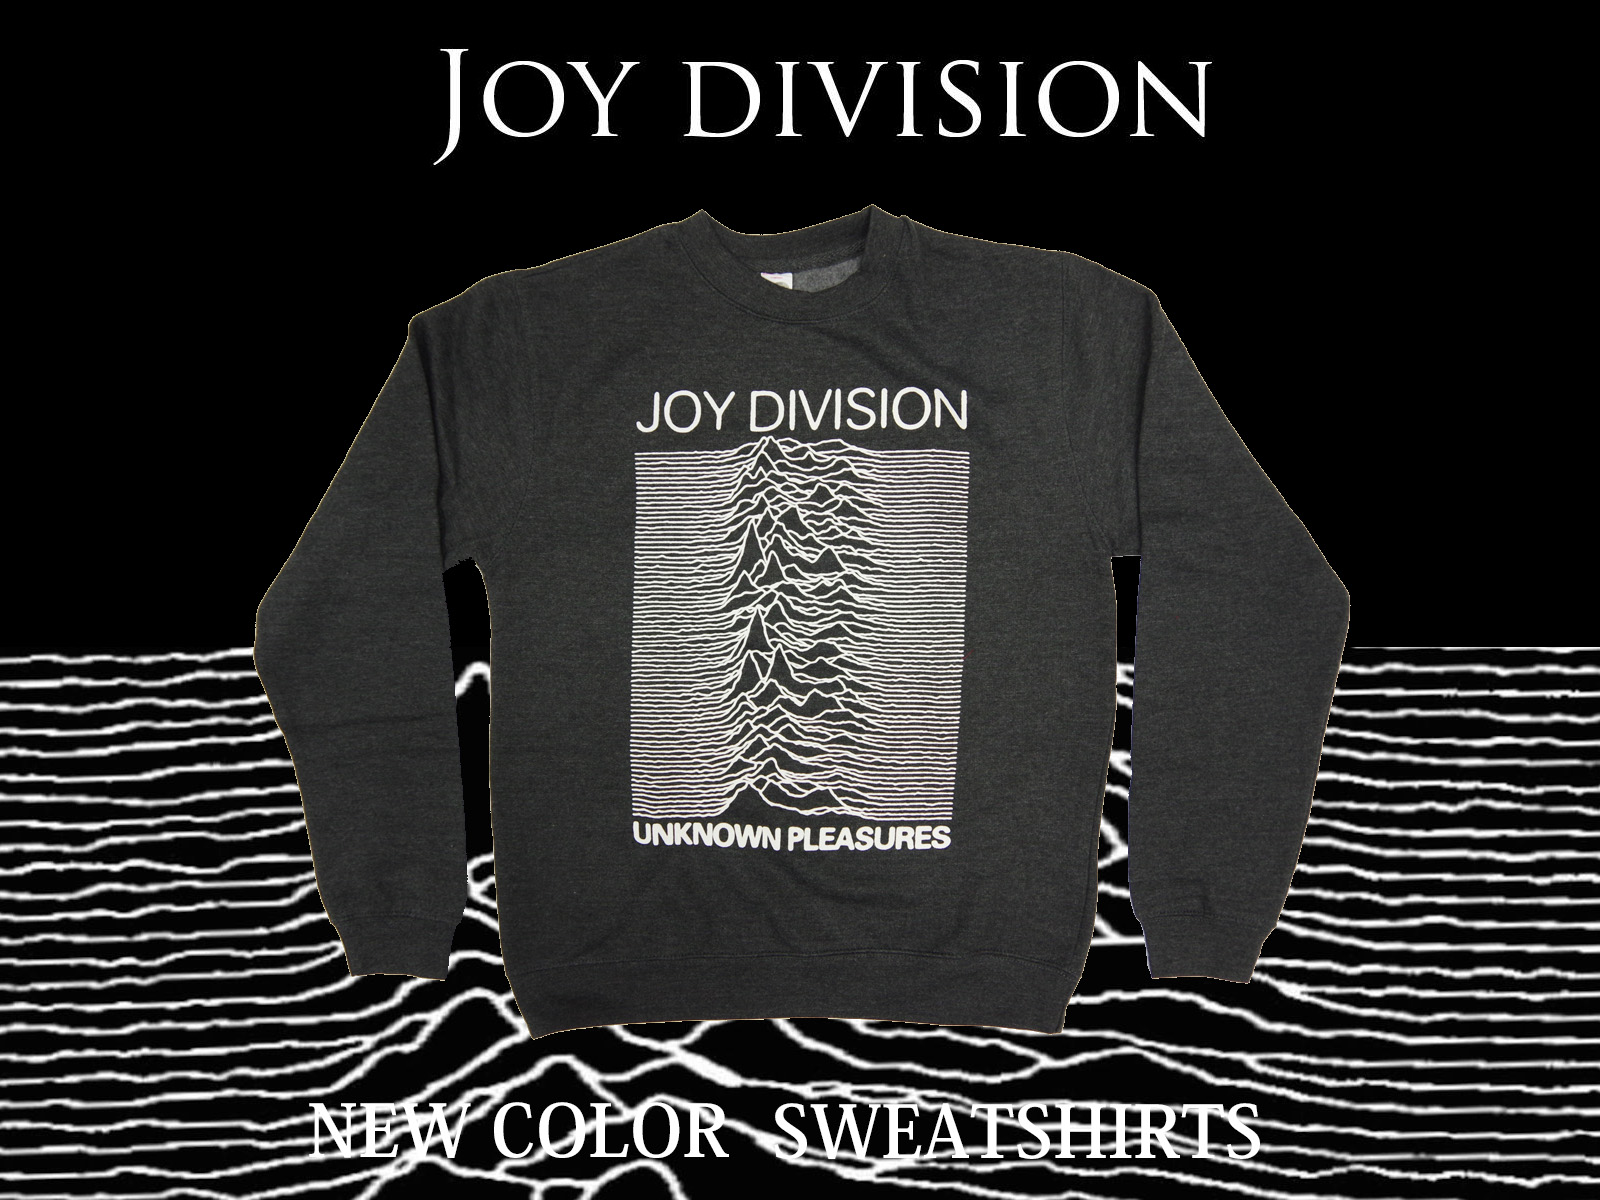 JOY DIVISION – New Official Item